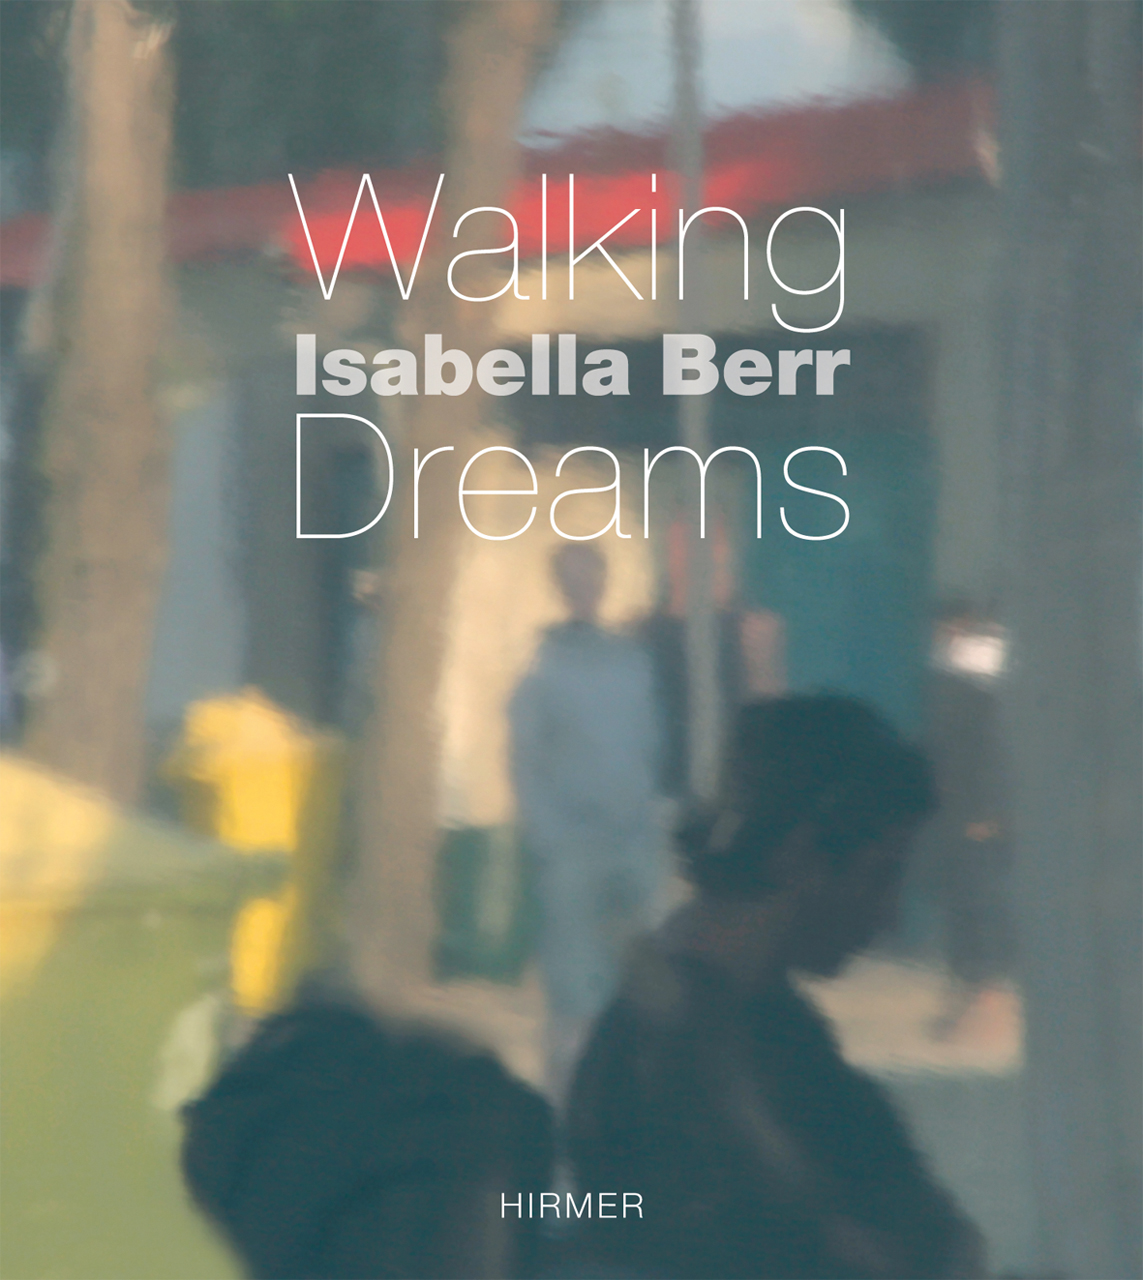 Isabella Berr: Walking Dreams